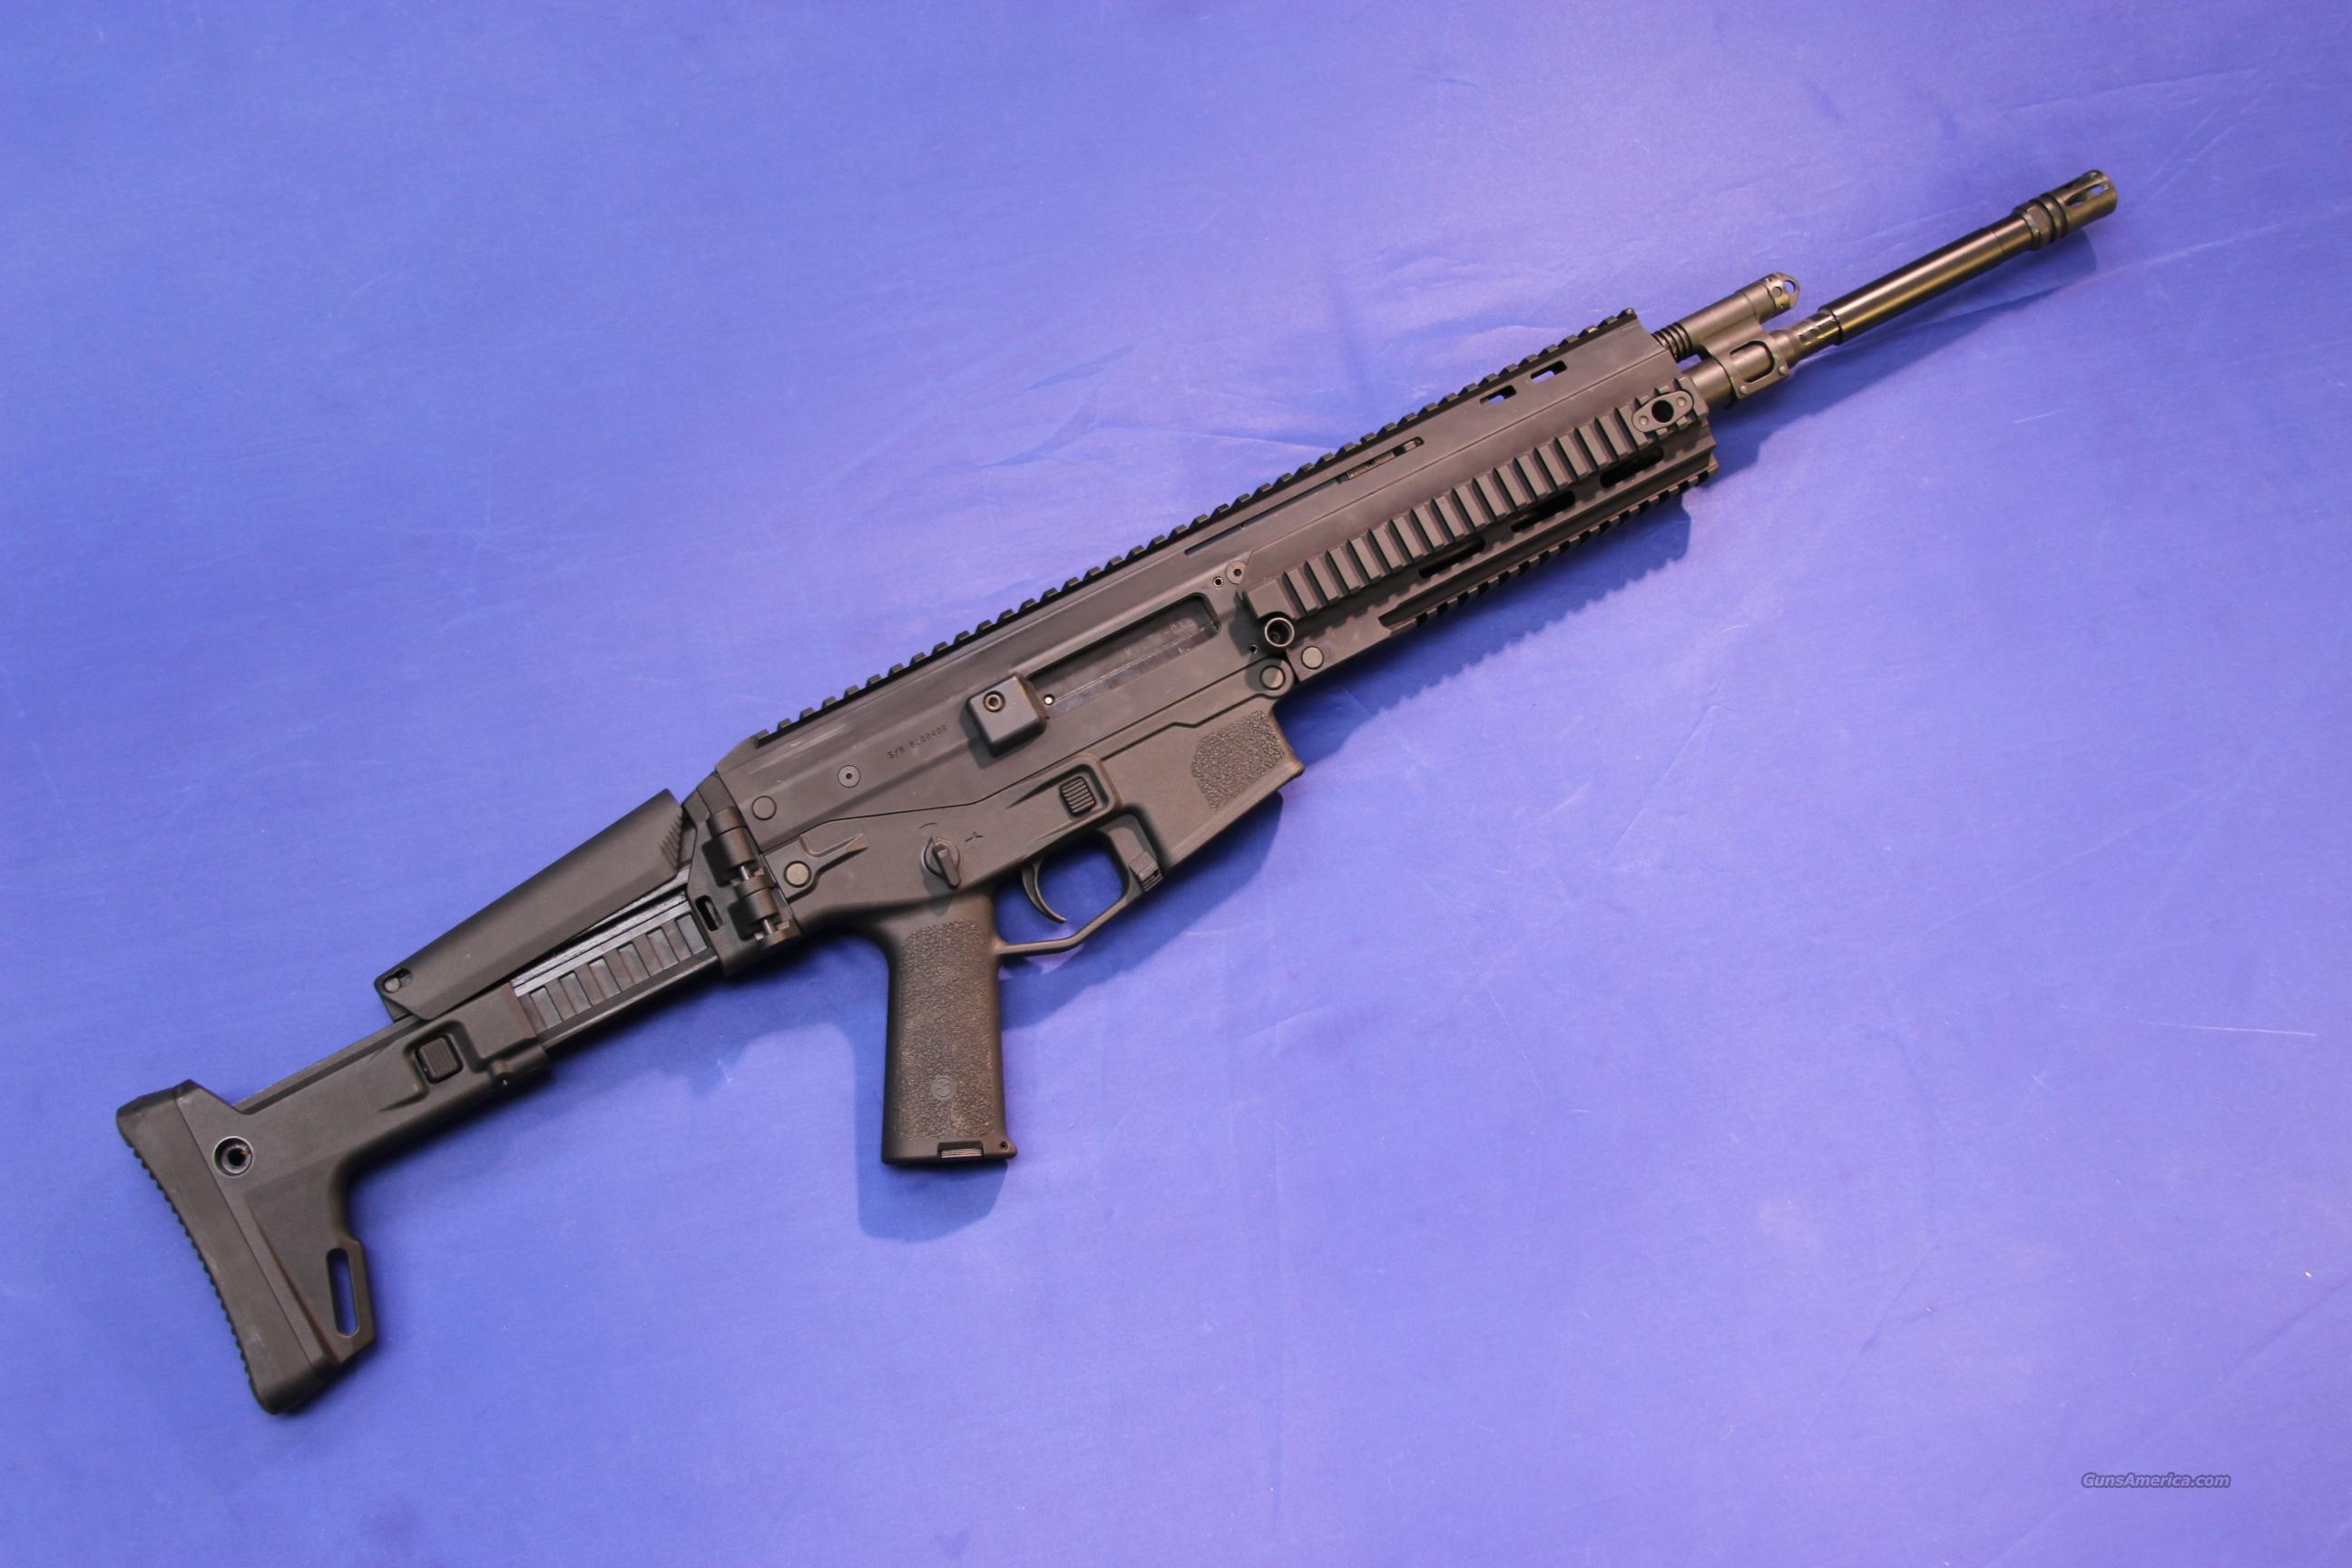 BUSHMASTER ACR ENHANCED CARBINE 5.56 NATO  Guns > Rifles > Bushmaster Rifles > Complete Rifles